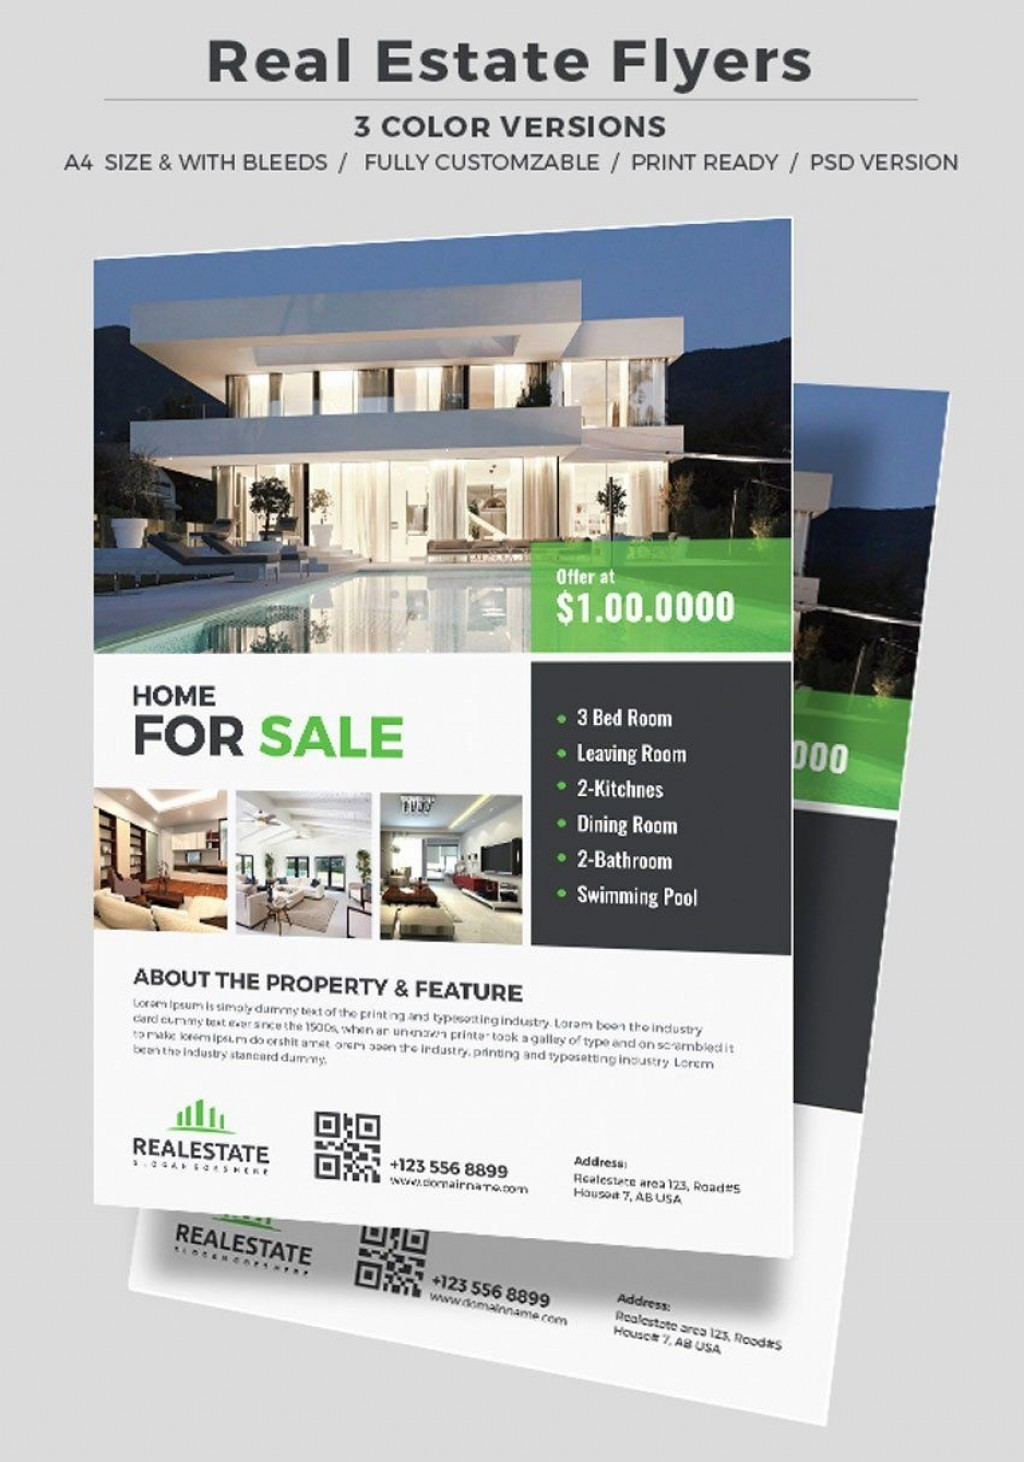 002 Unforgettable Real Estate Advertising Template Photo  Newspaper Ad Instagram CraigslistLarge